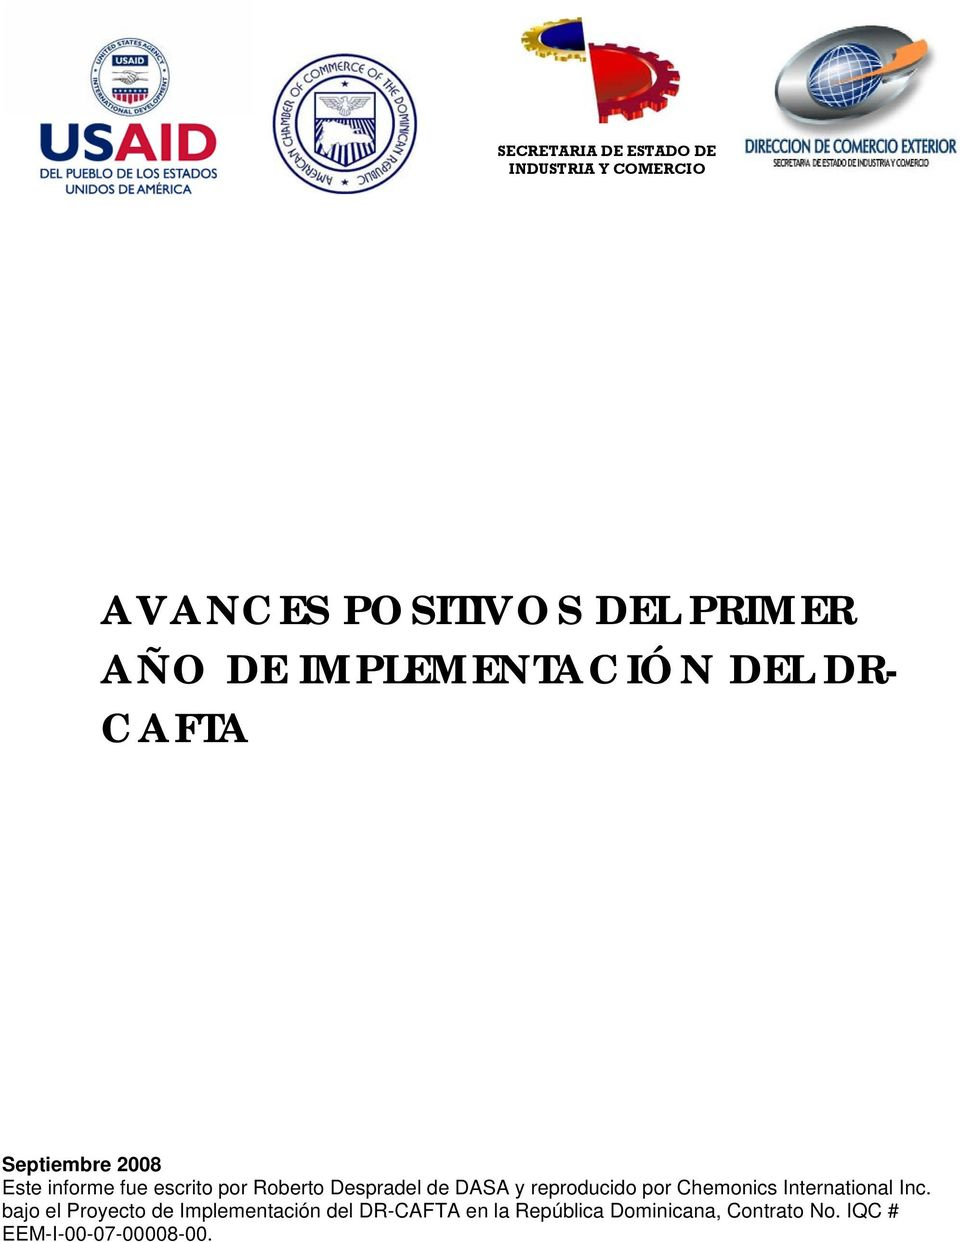 Despradel de DASA y reproducido por Chemonics International Inc.